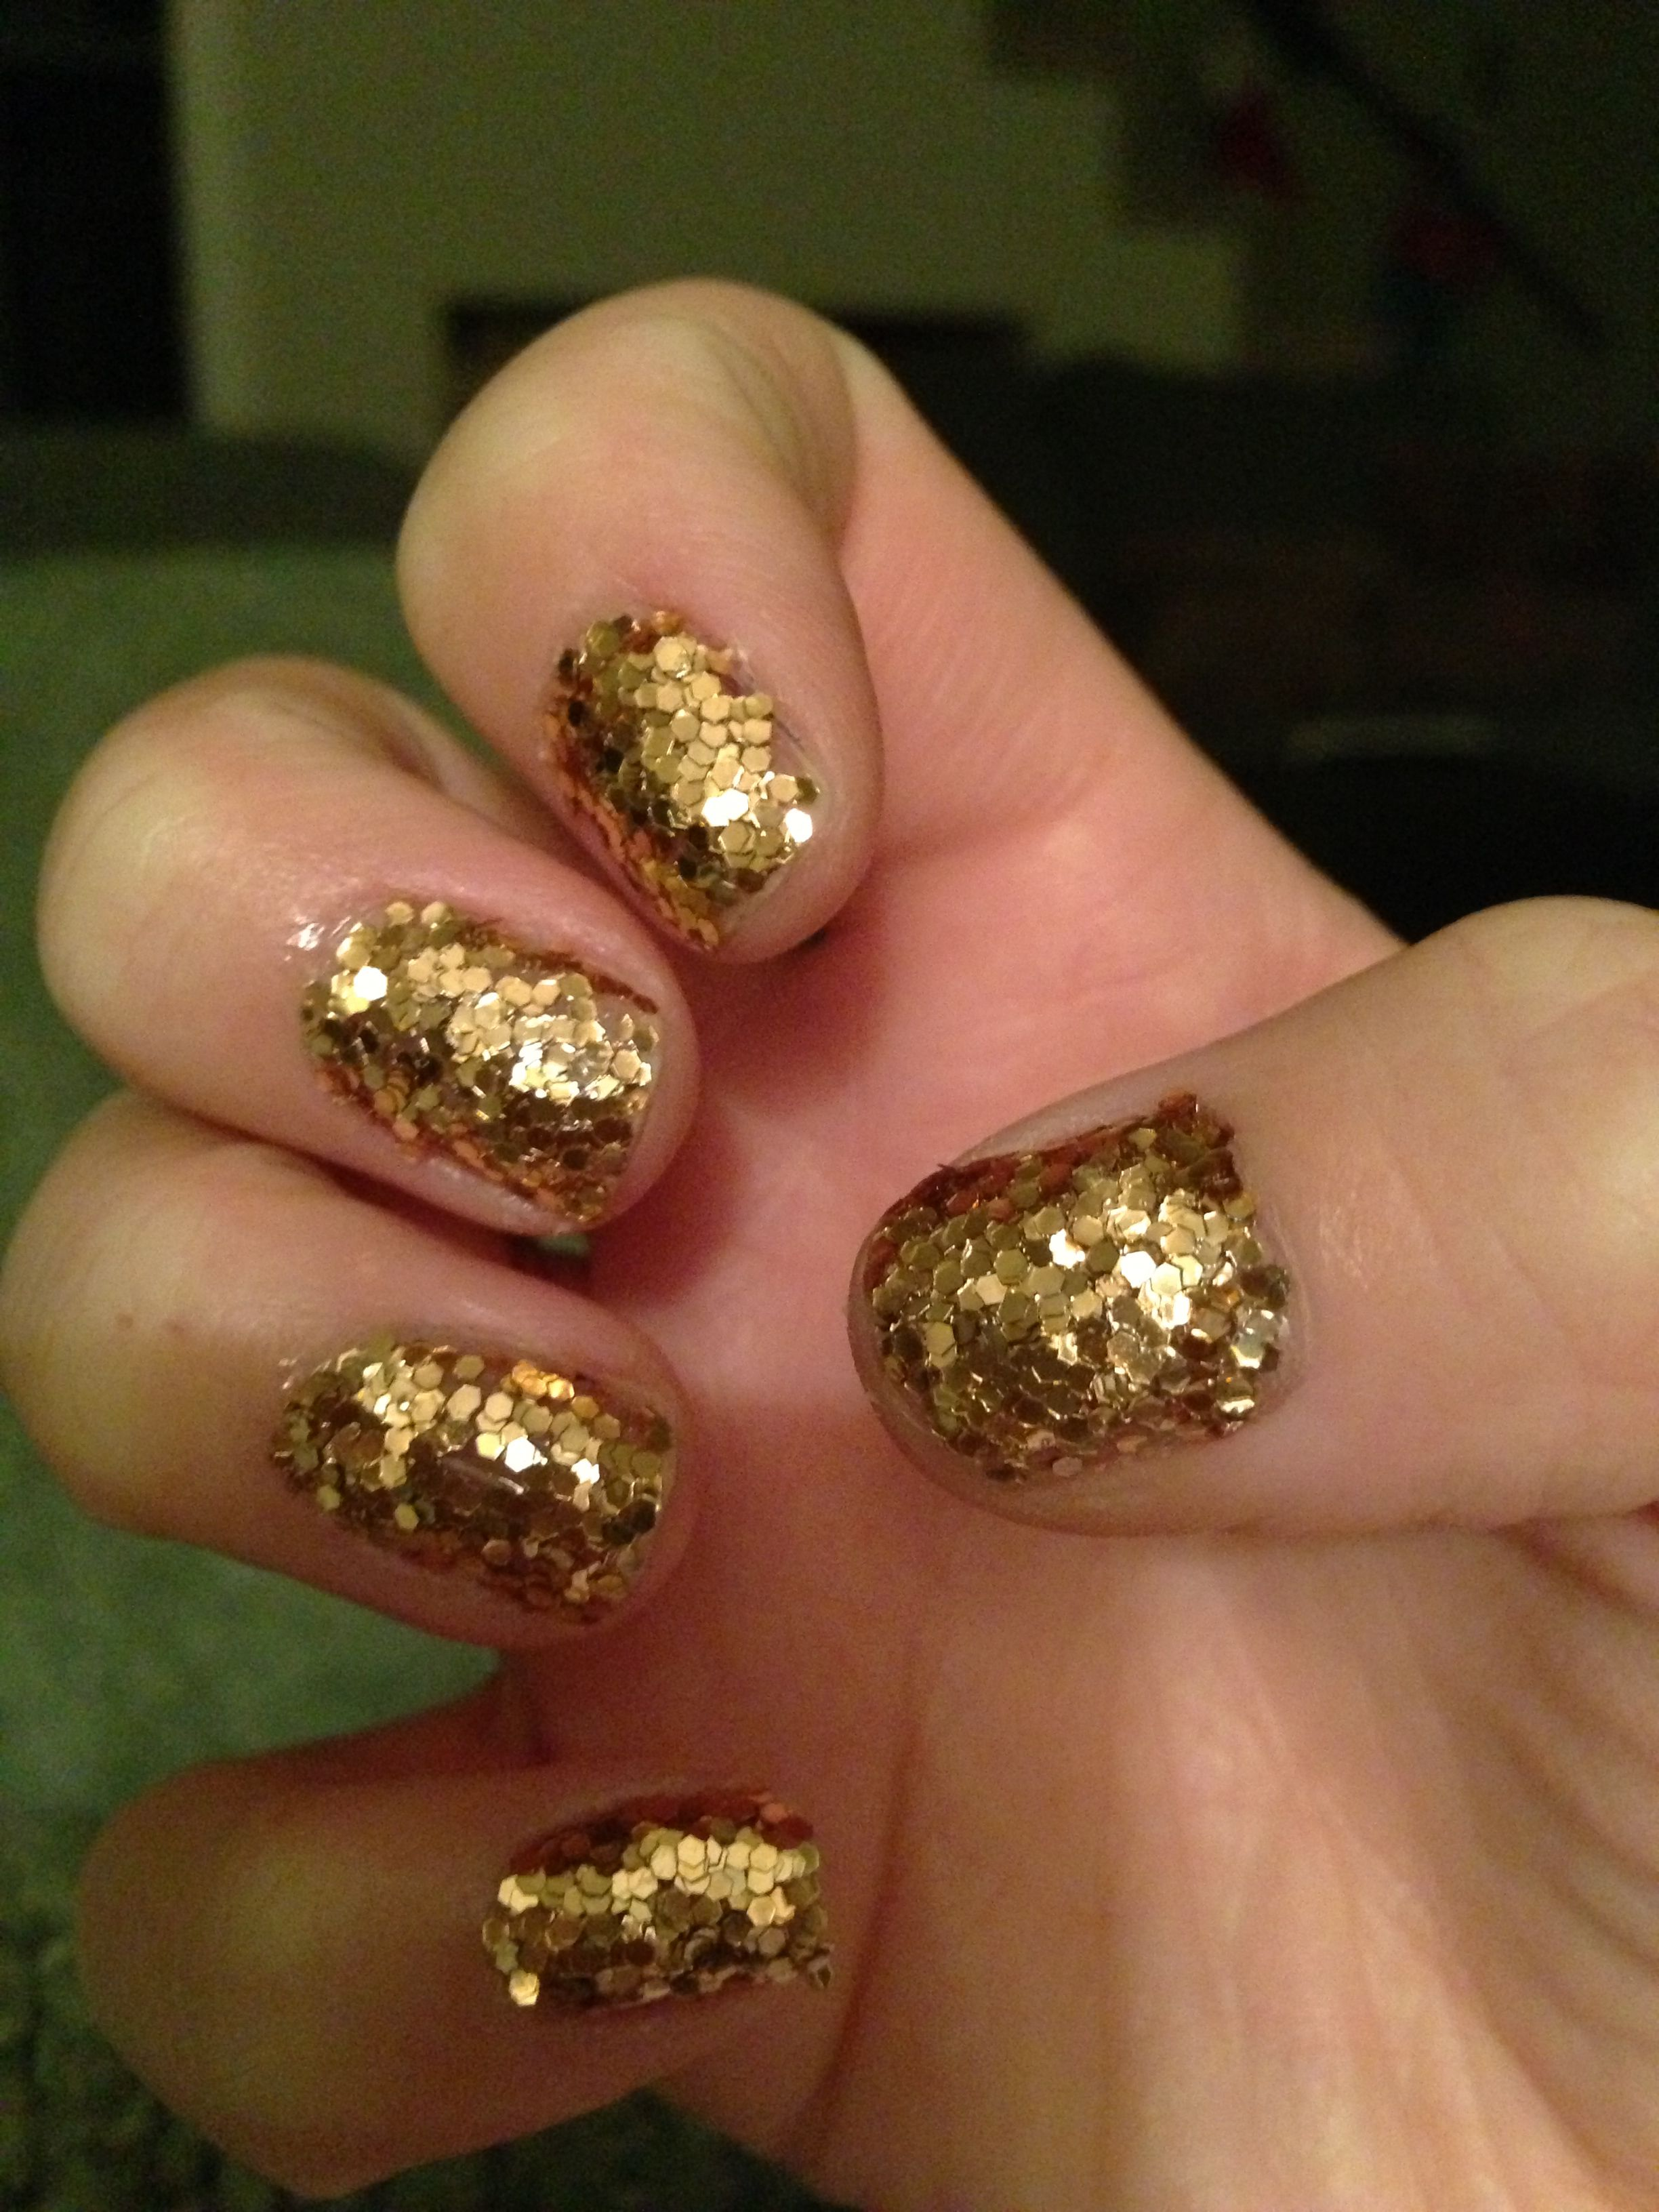 Do it yourself glitter nails do one coat of clear top coat and do it yourself glitter nails do one coat of clear top coat and immediately sprinkle each nail with glitter while top coat is still wet solutioingenieria Images